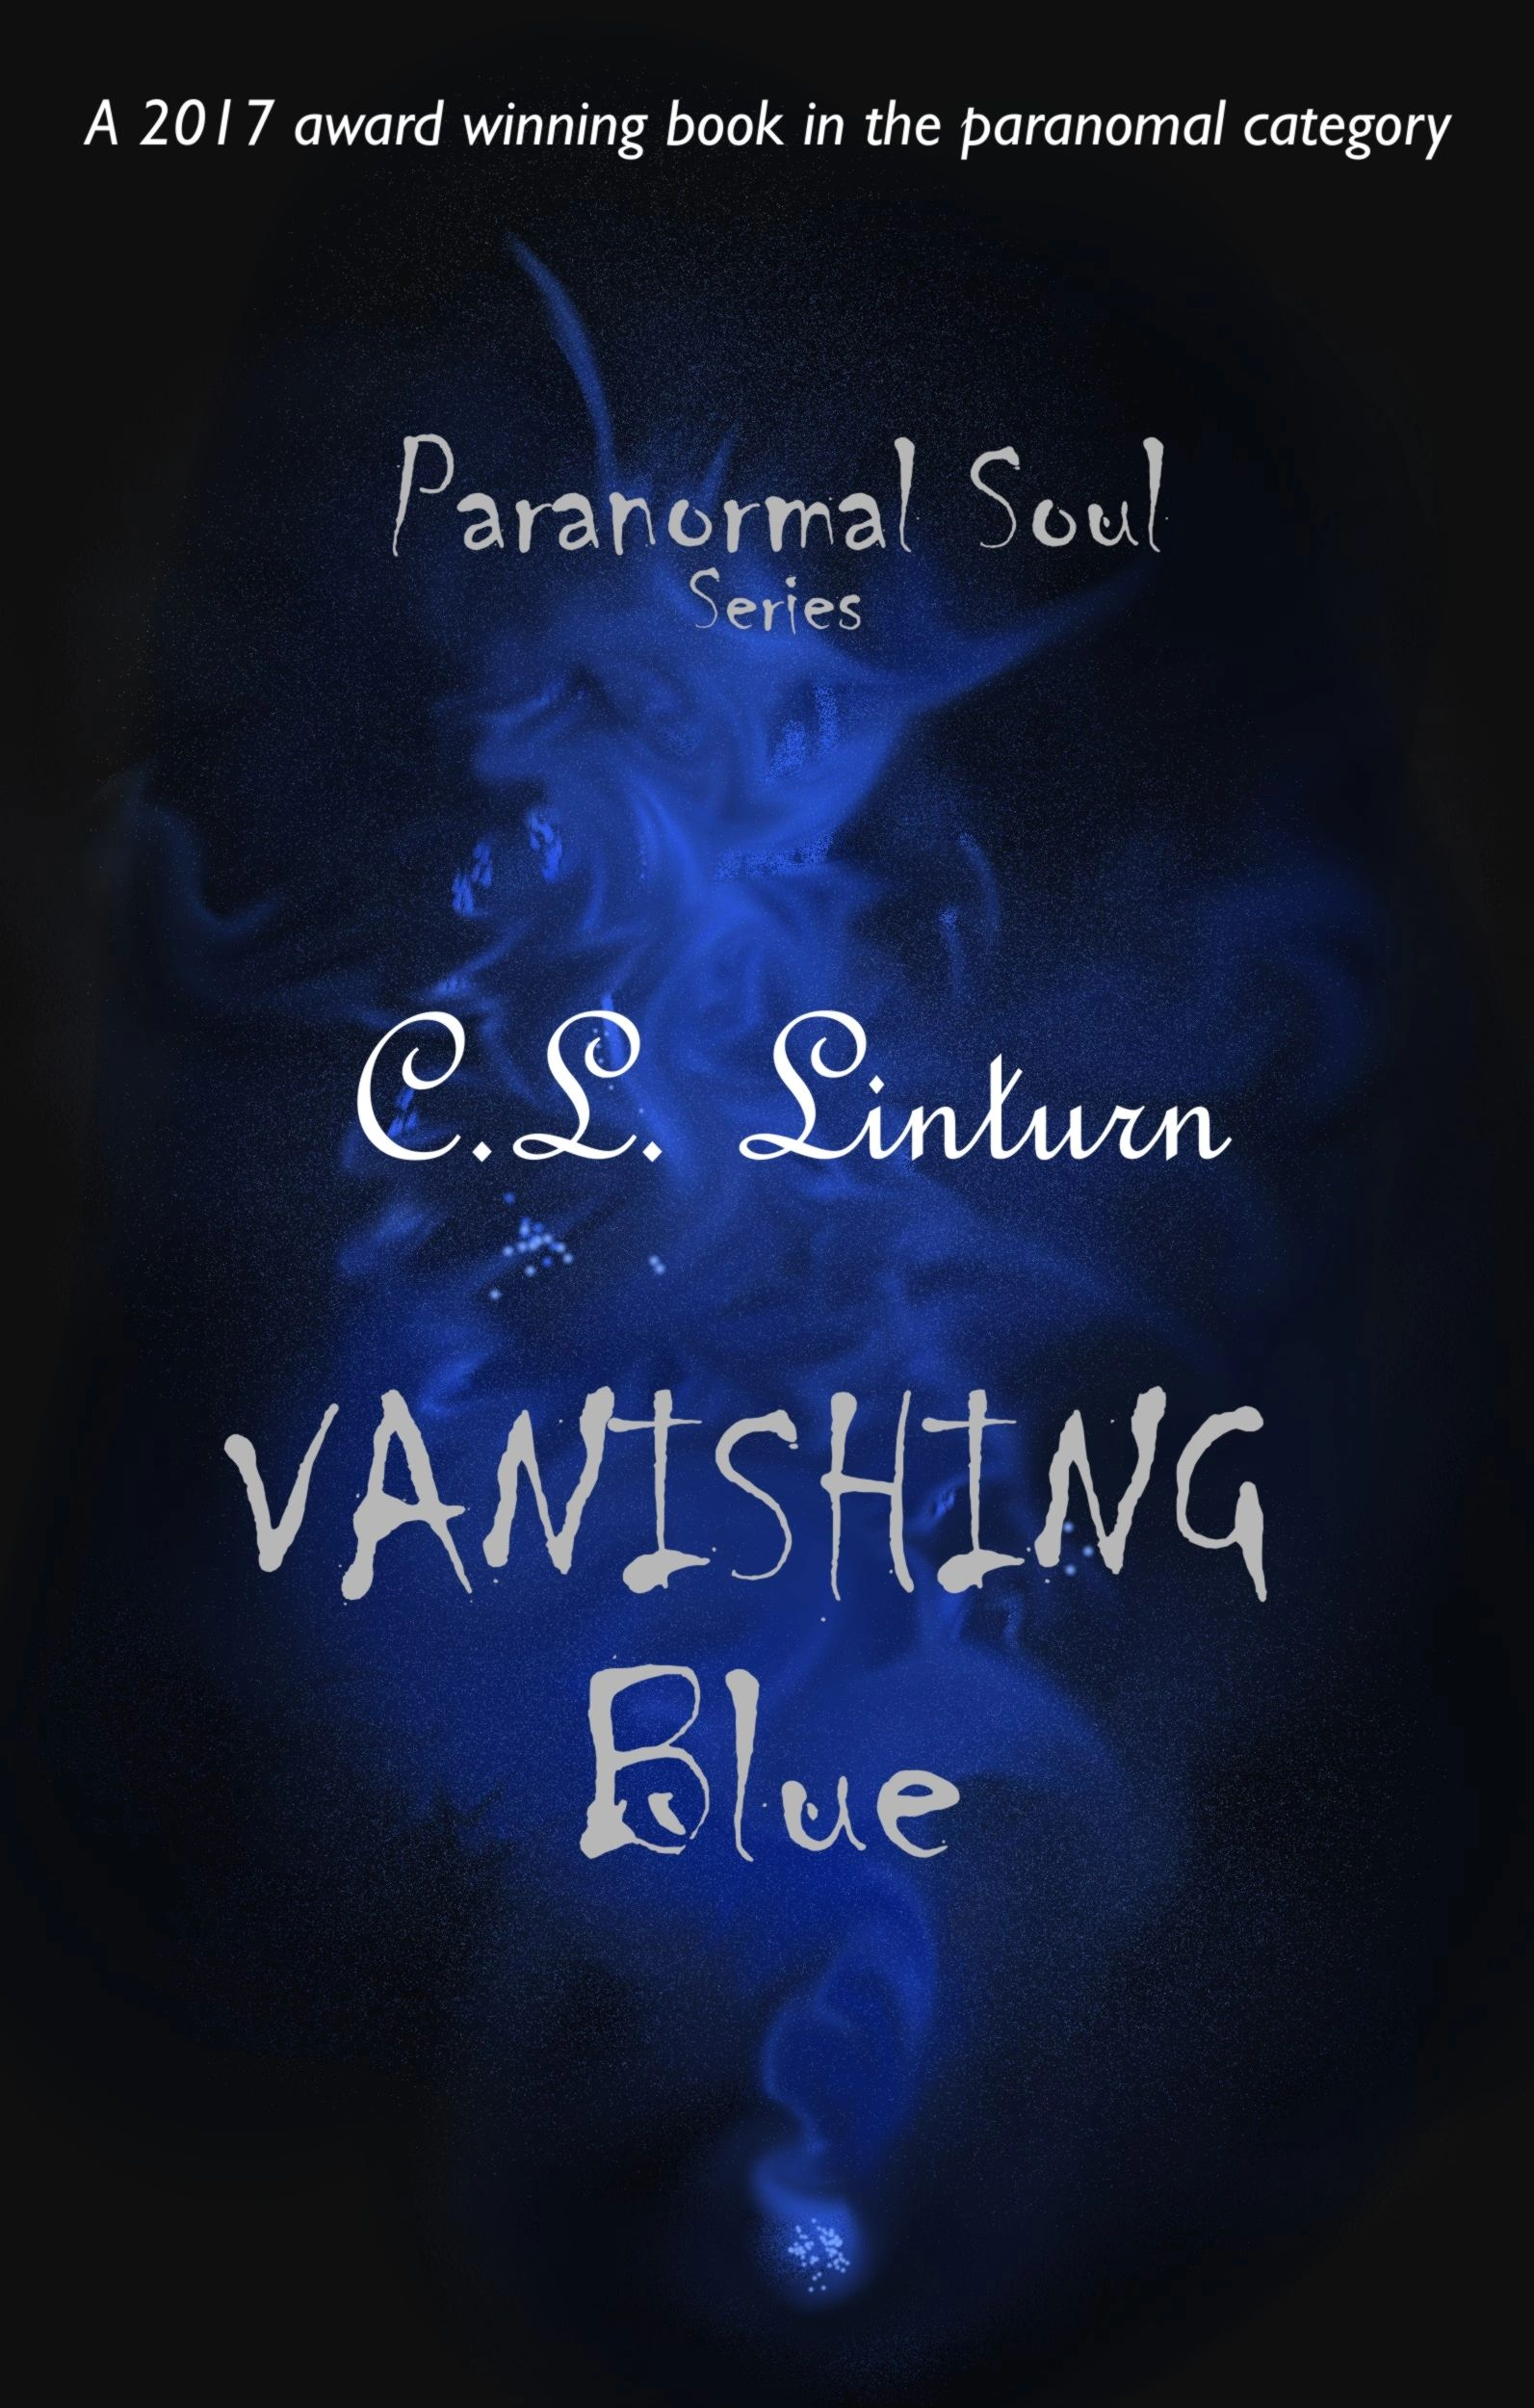 Book cover for Vanishing blue